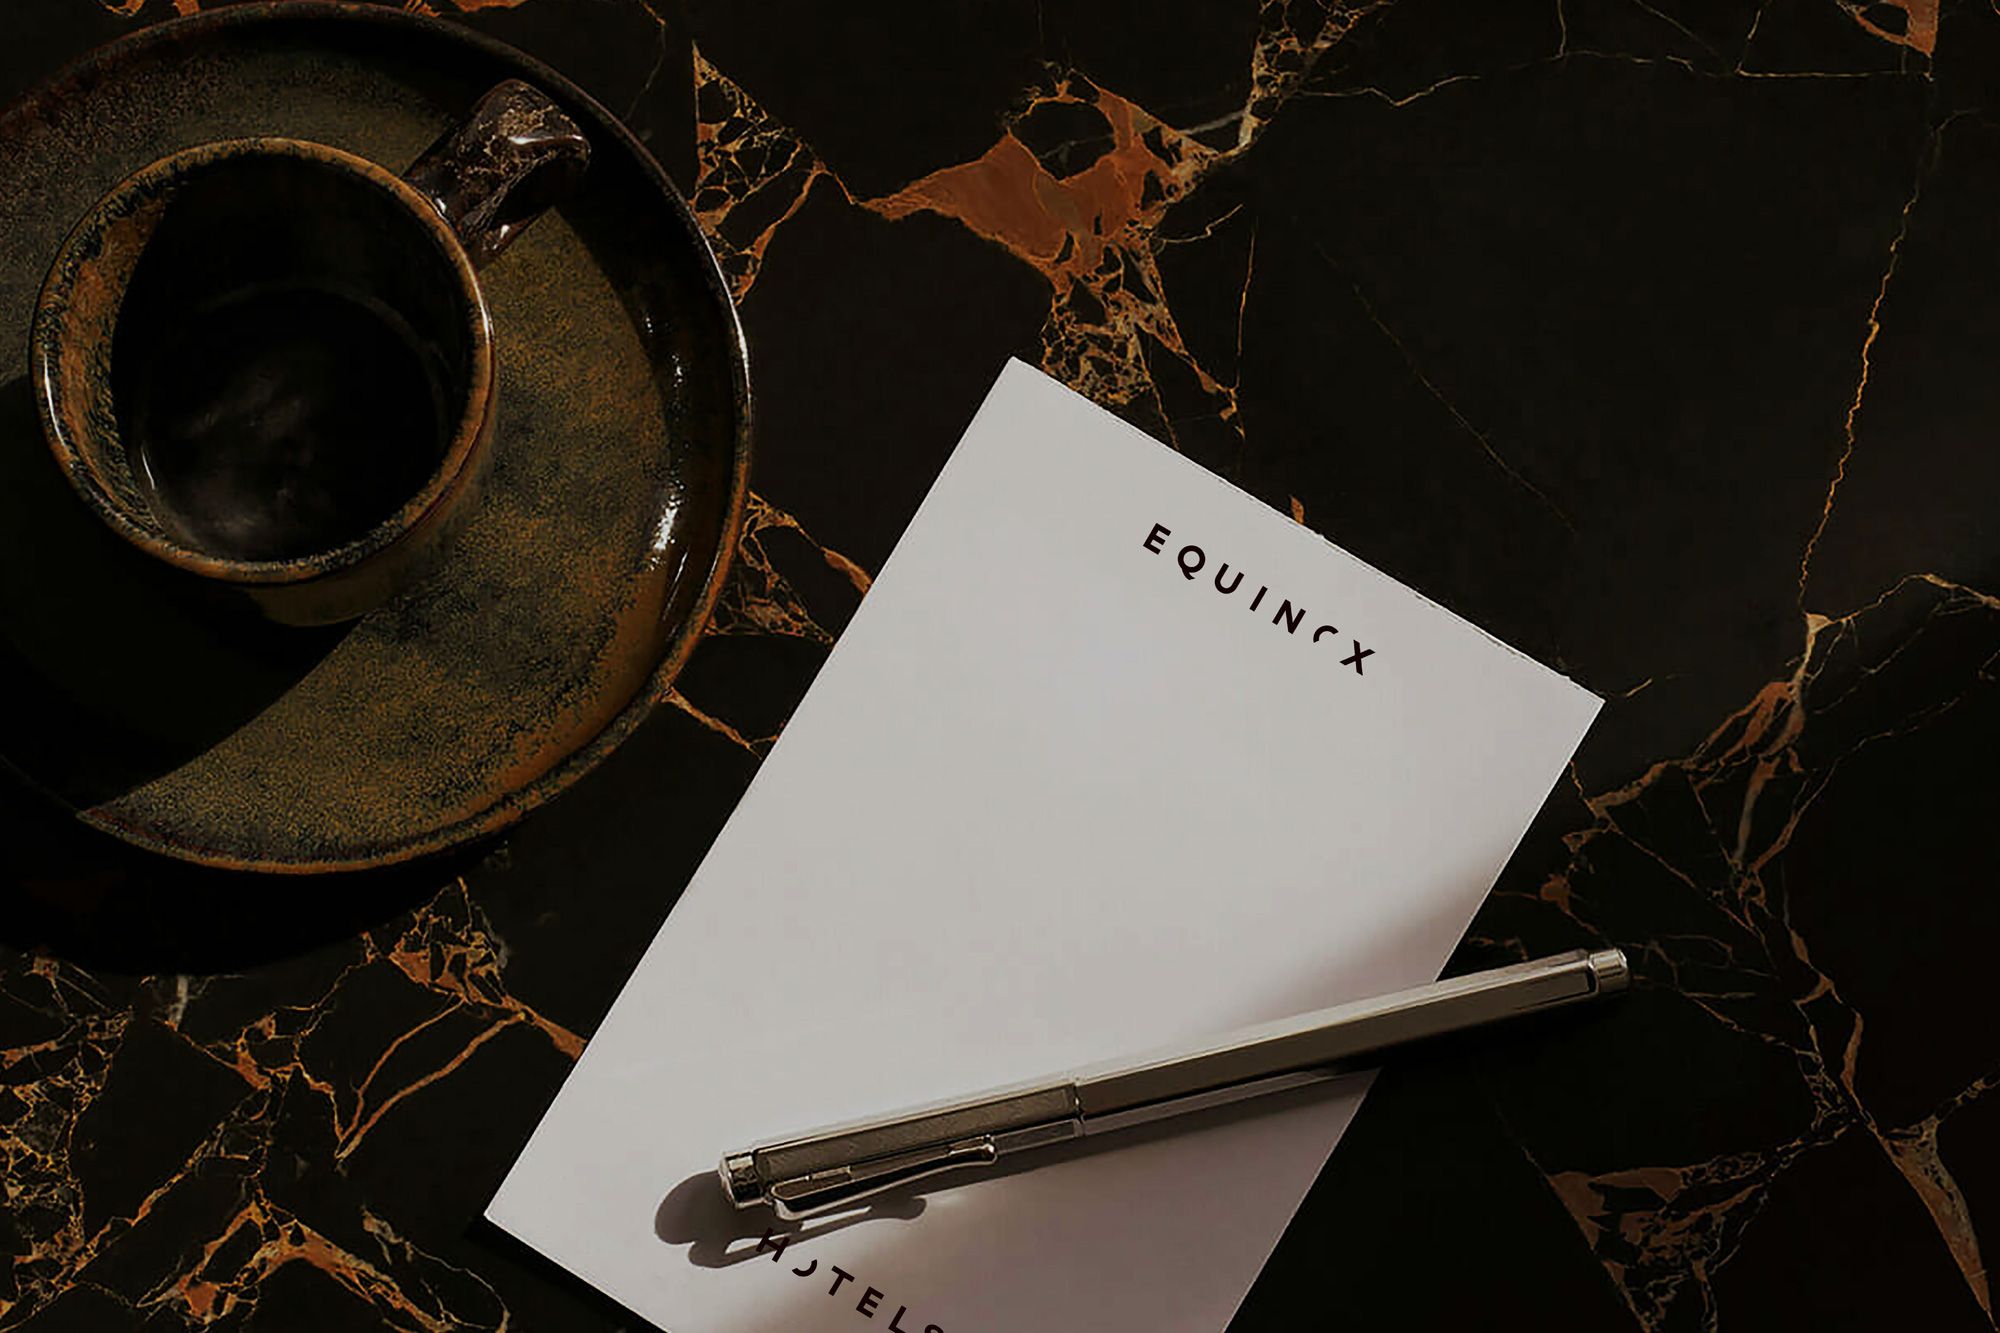 New Logo and Identity for Equinox Hotels by COLLINS